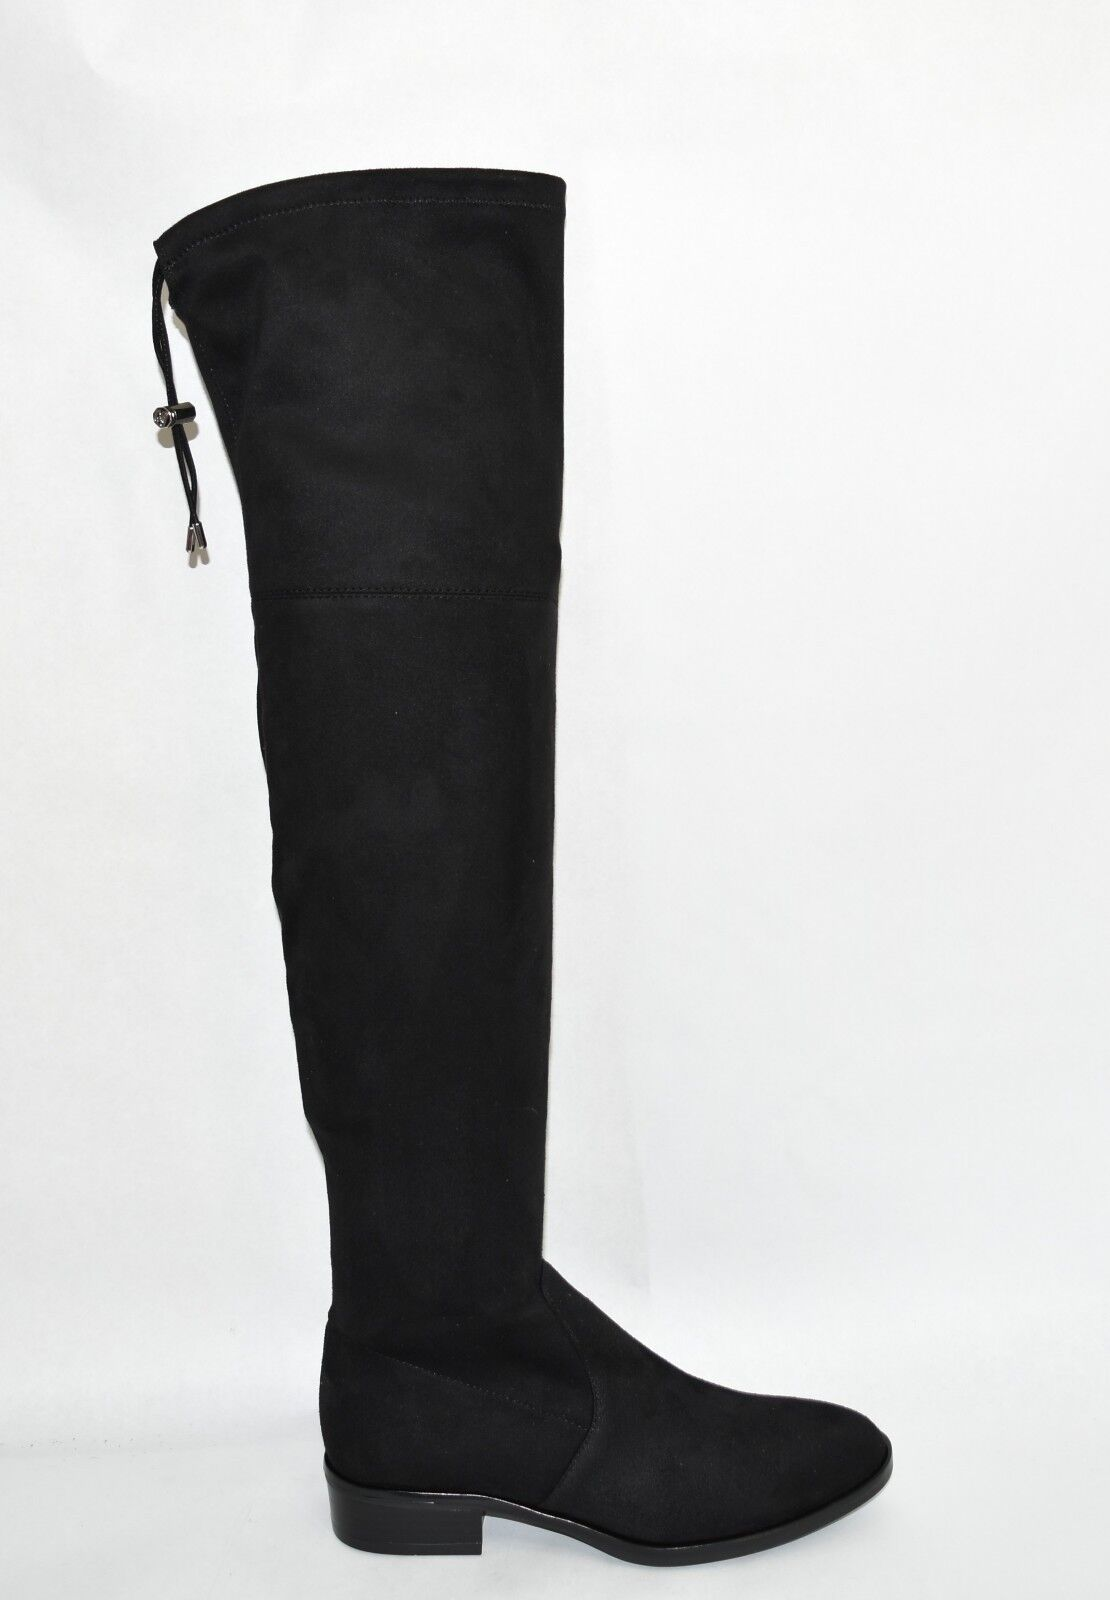 New New New  Sam Edelman 'Paloma' Size 9.5 Over-the-Knee Black Suede Boots OTK T35 662bb7